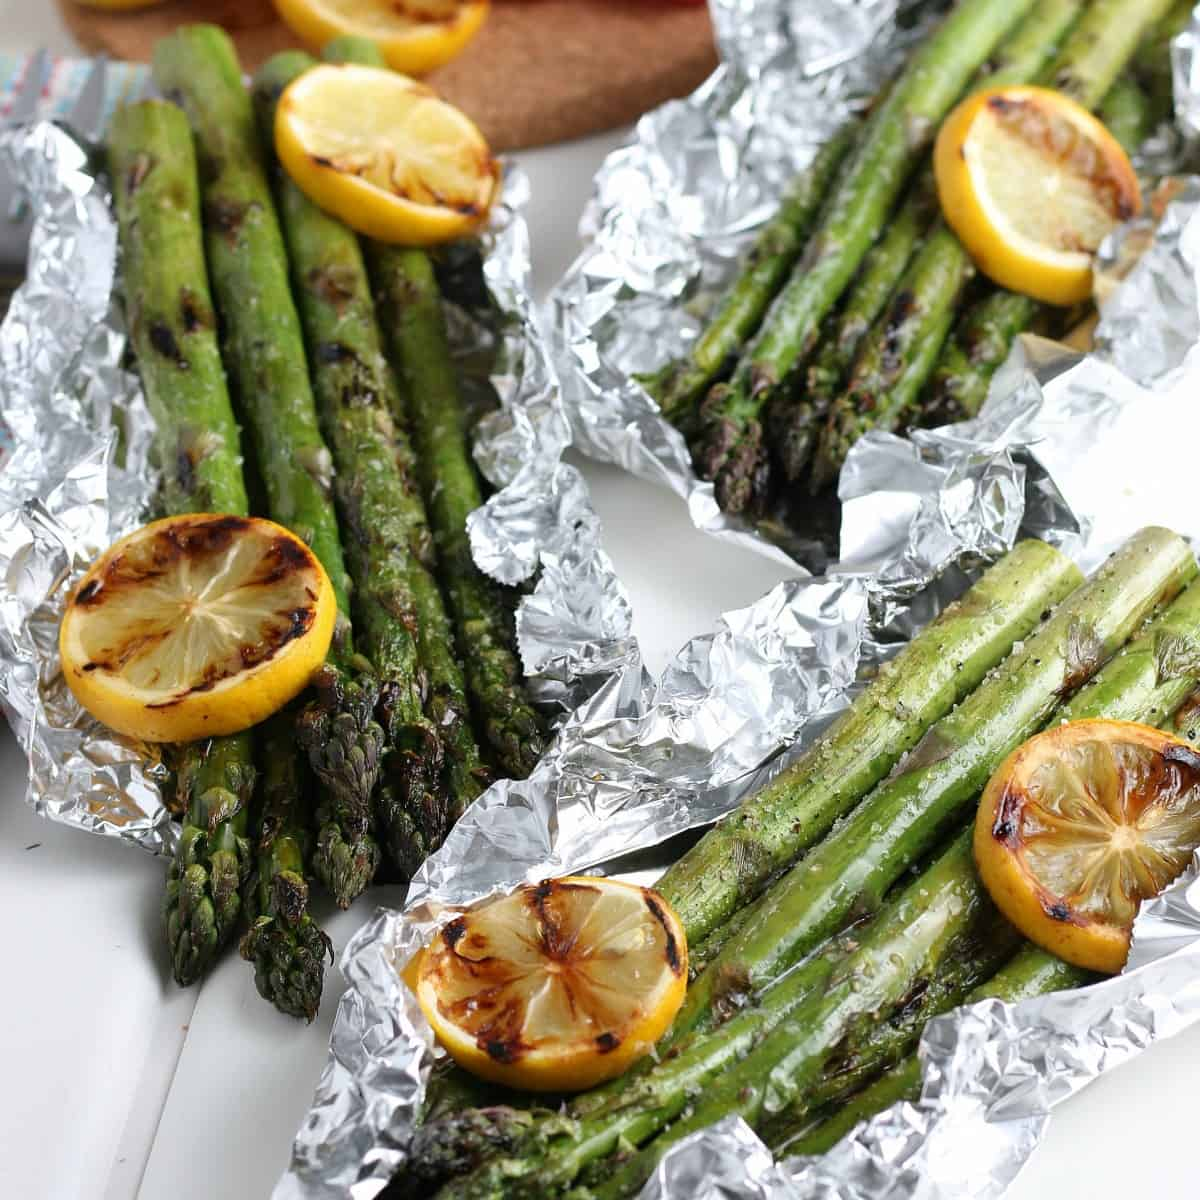 Three packets of veggies after bring grilled and opened.